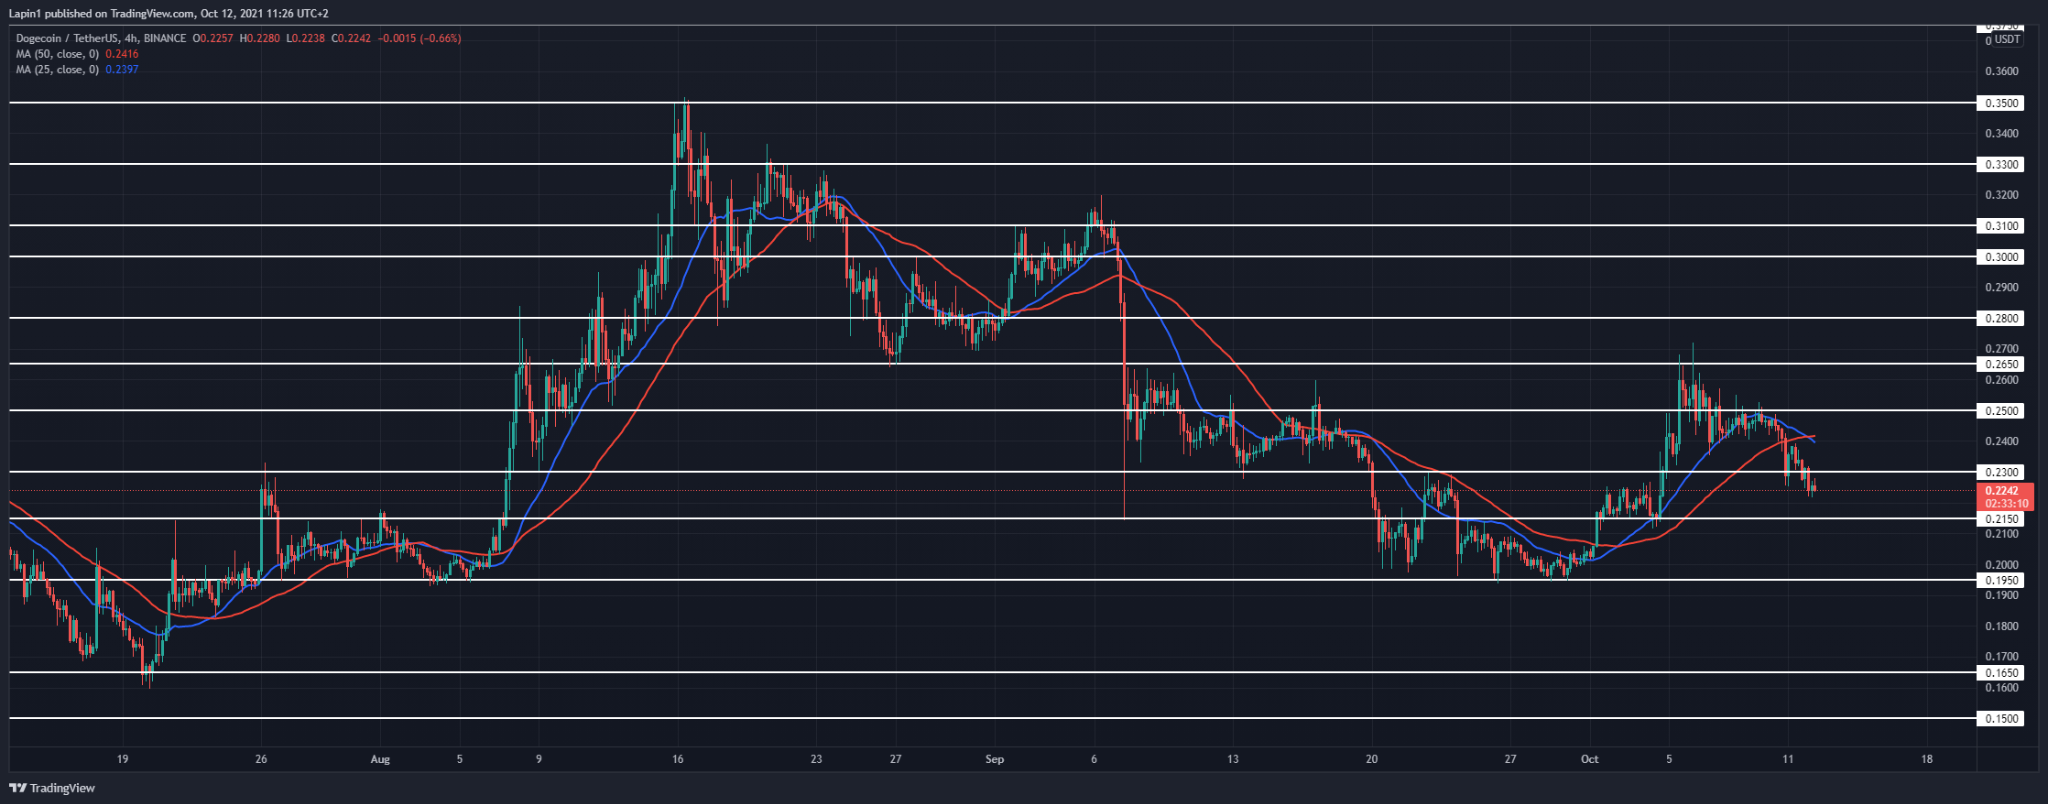 Dogecoin Price Analysis: DOGE continues to retrace, $0.23 support broken